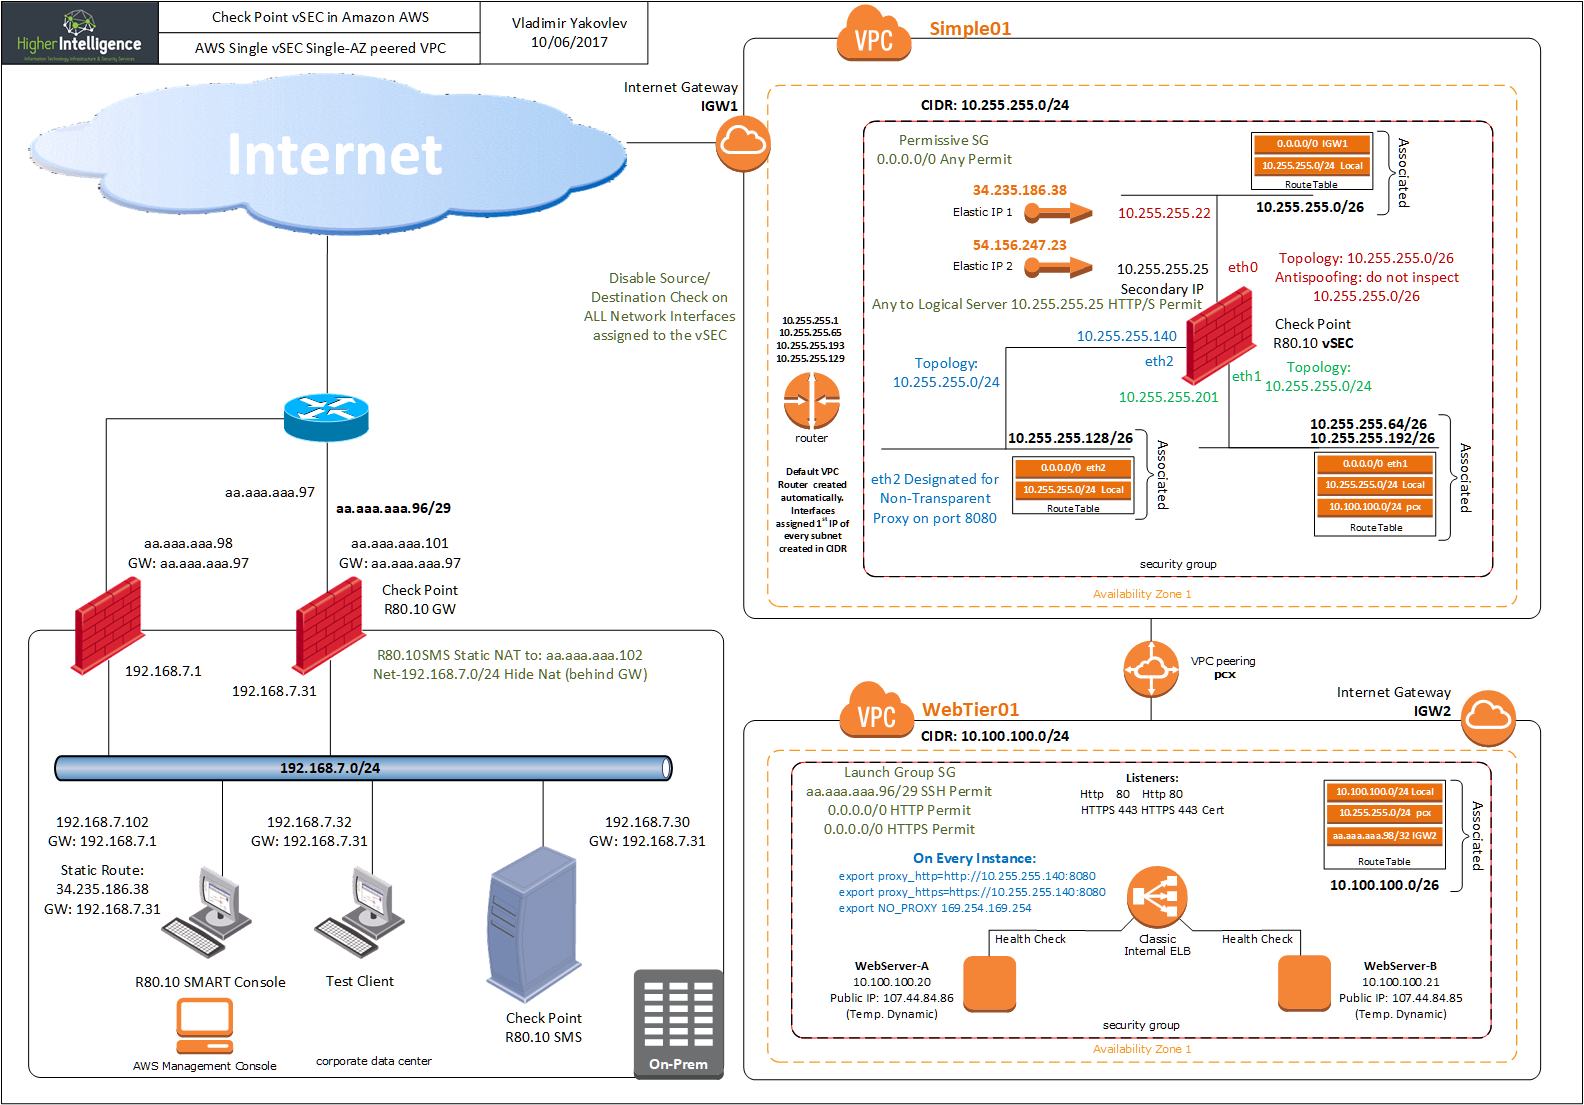 Re: Checkpoint AWS Egress connectivity - Check Point CheckMates